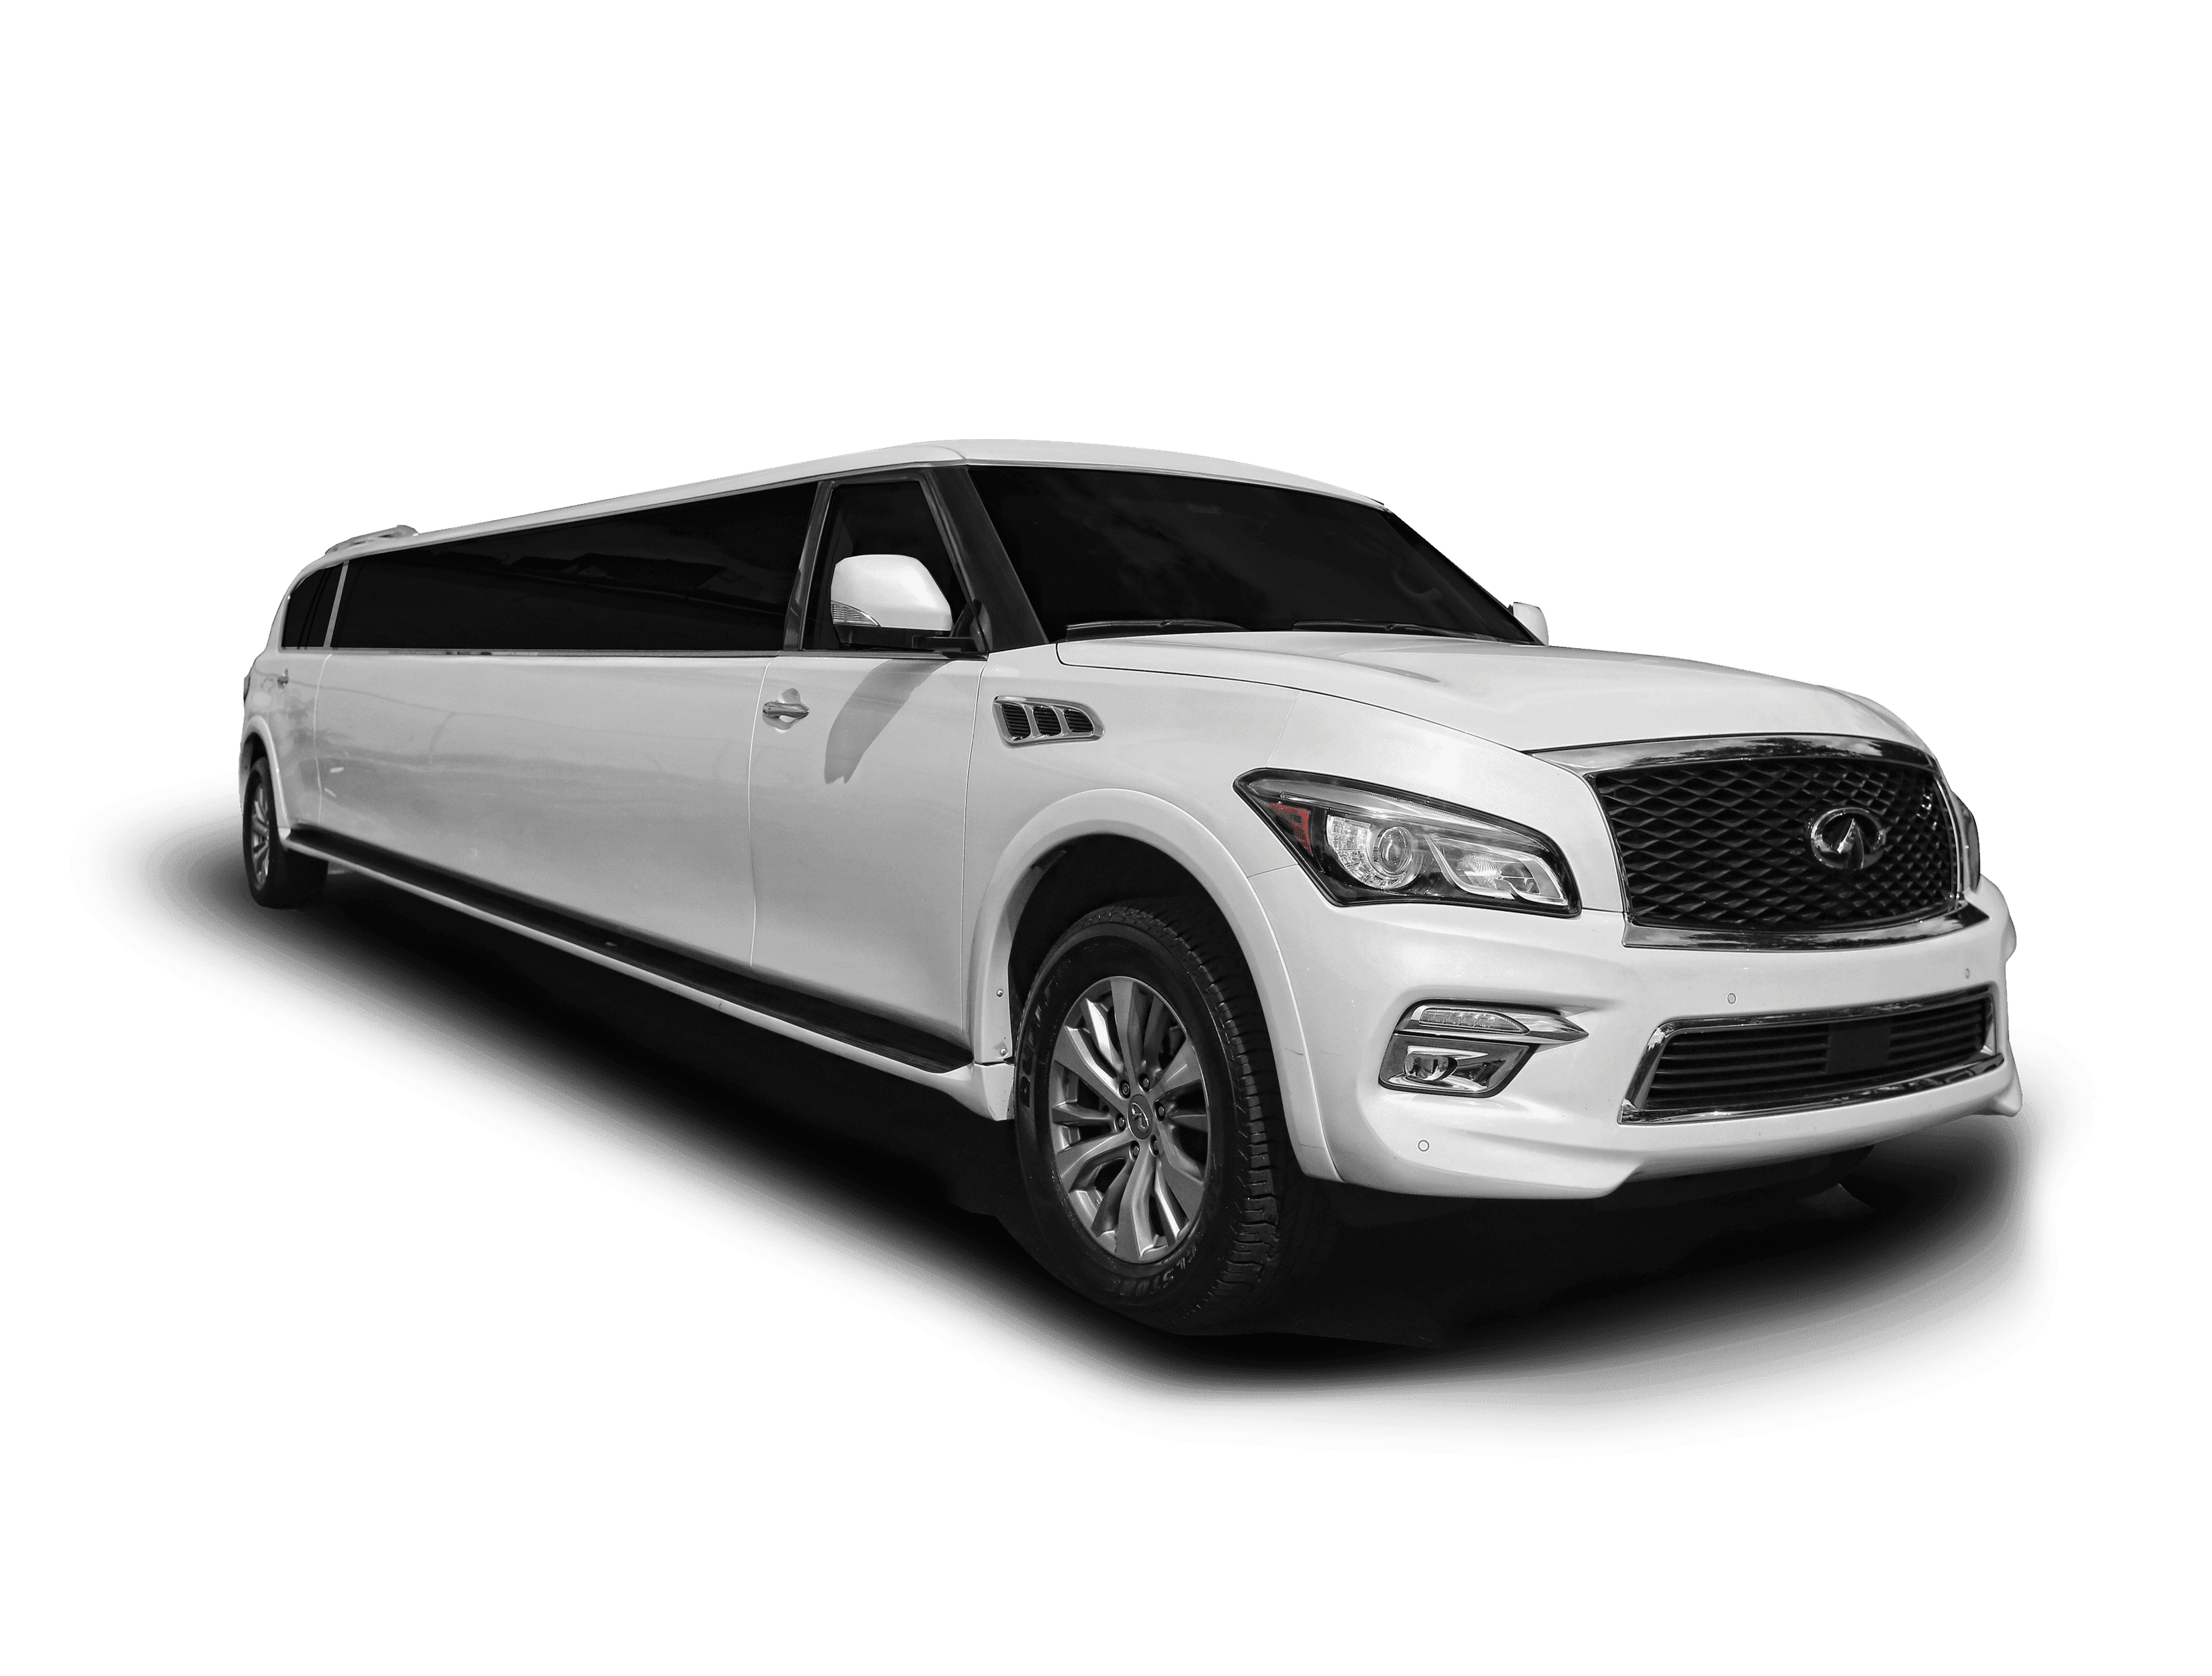 Infiniti QX 80 limousine for halloween & Haunted House limo tour in NJ, NY and PA.